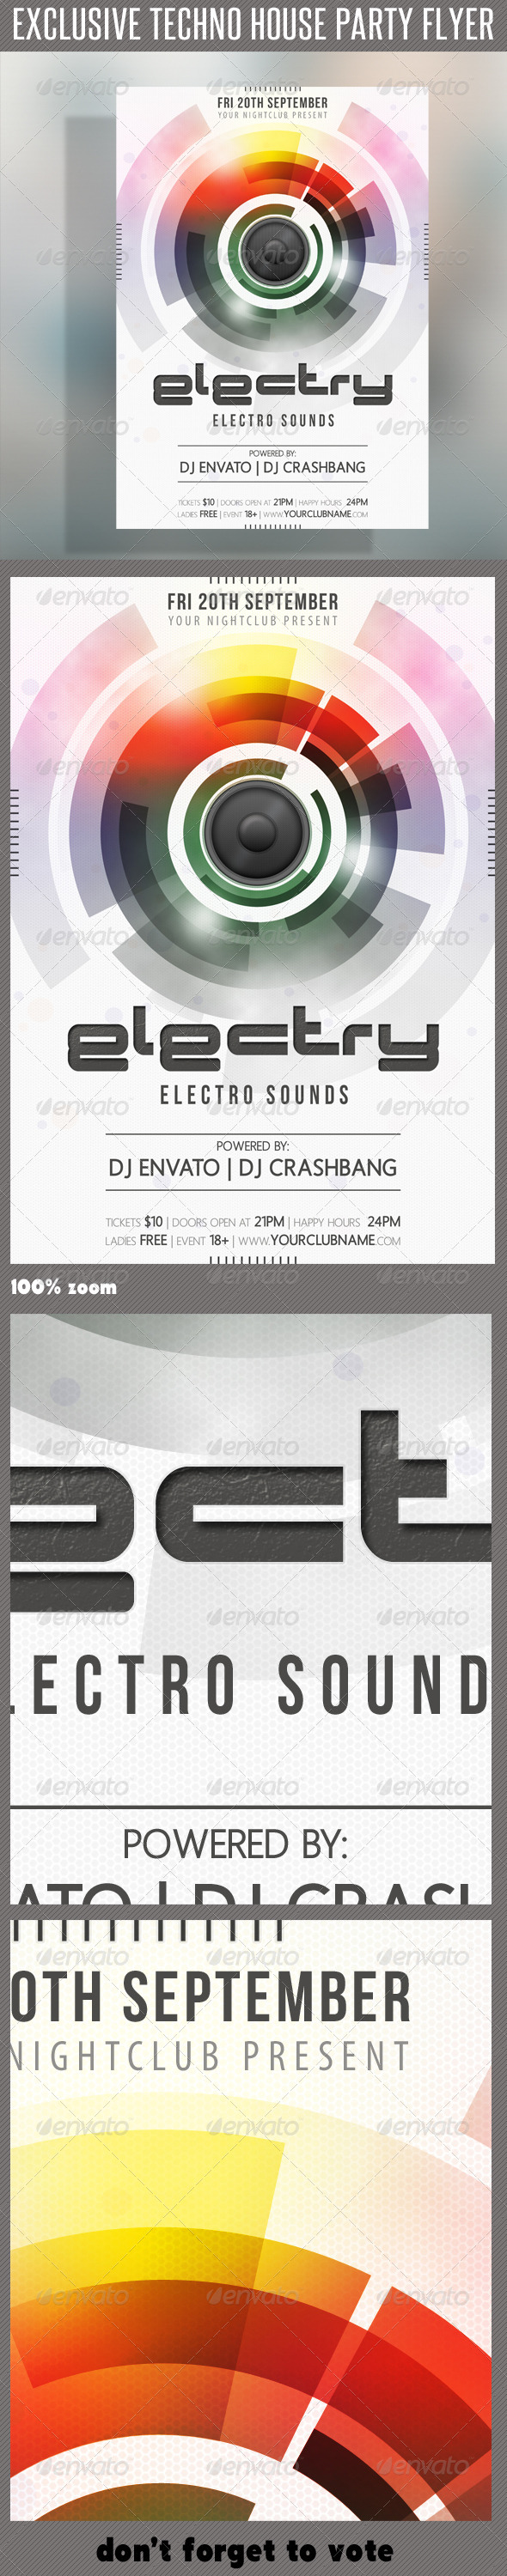 Techno House Flyer 03 - Clubs & Parties Events